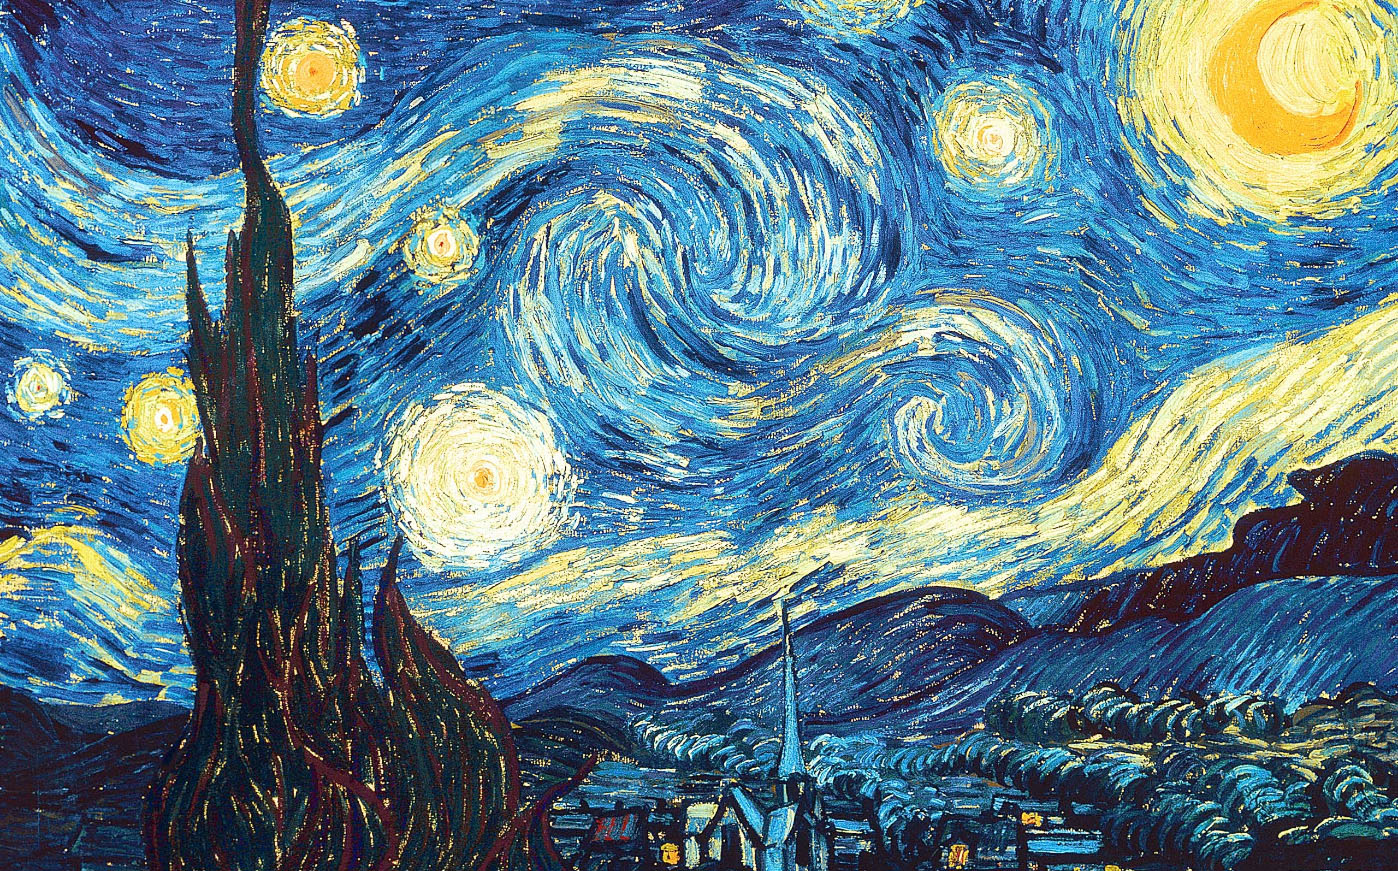 van Gogh, Vincent. The Starry Night . 1889. Museum of Modern Art, New York, NY.